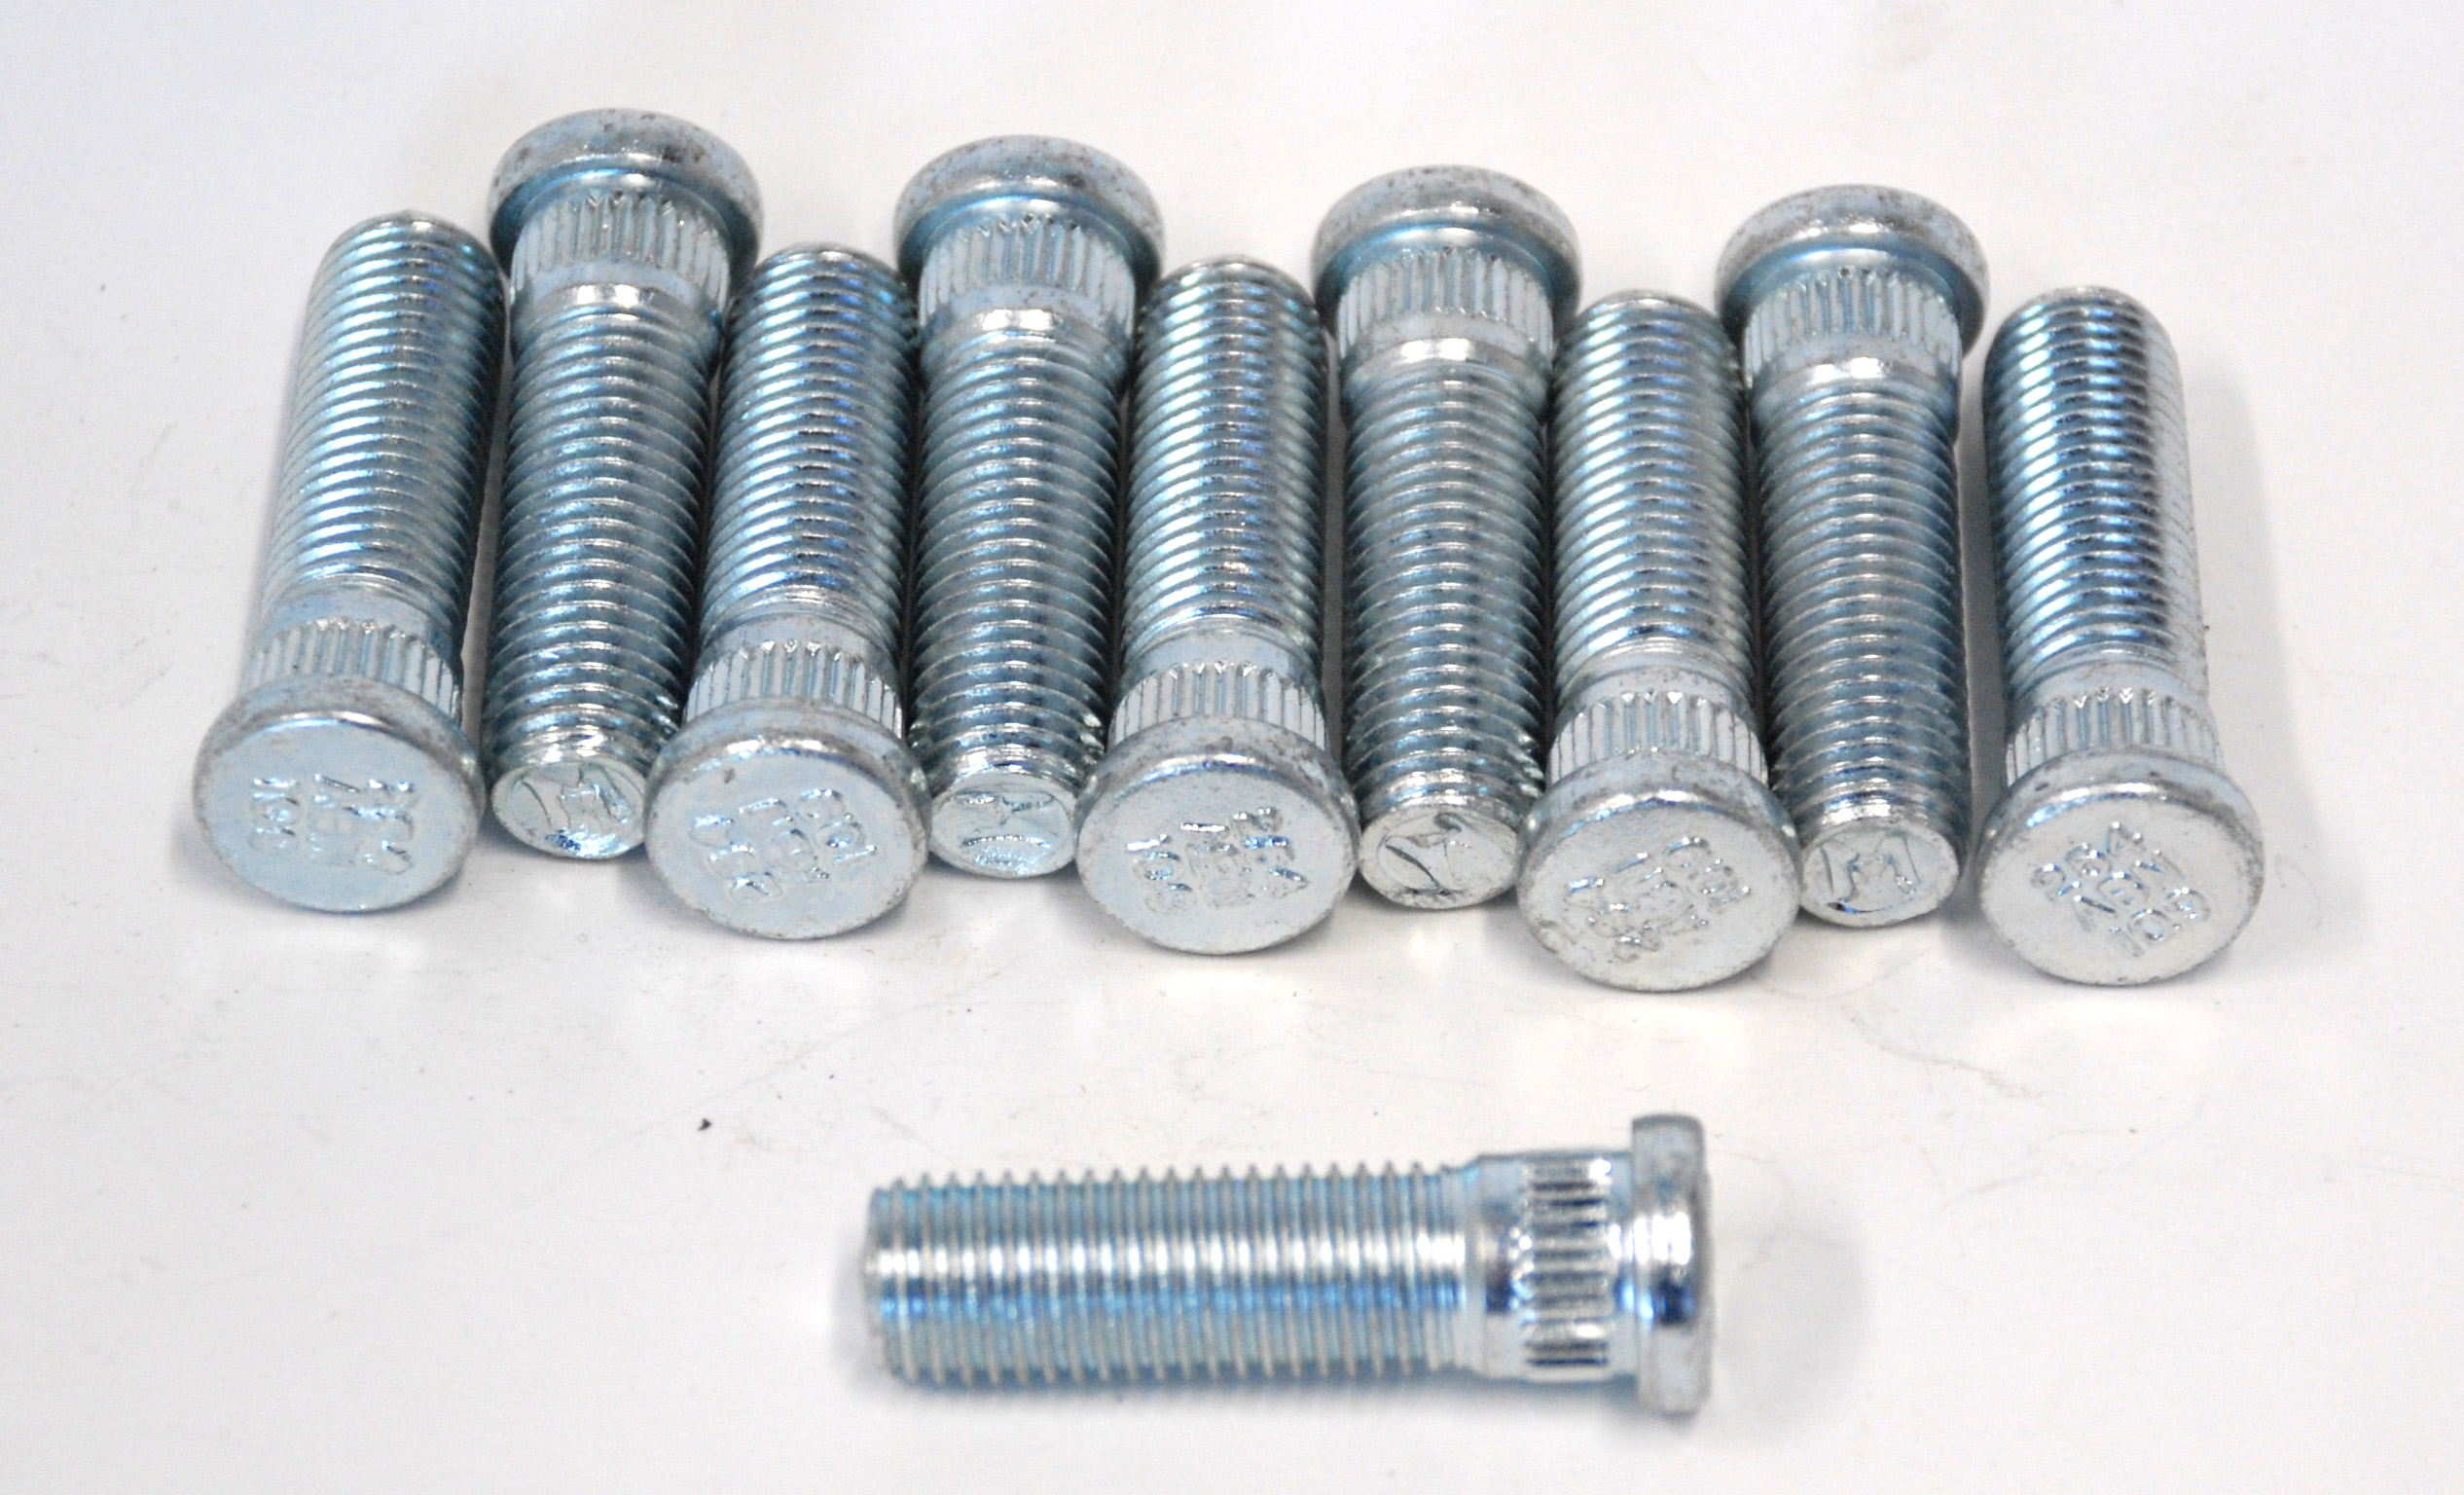 "Part # 8254 - 12mm x 1 1/2"" .505"" knurl Chevy 12mm"